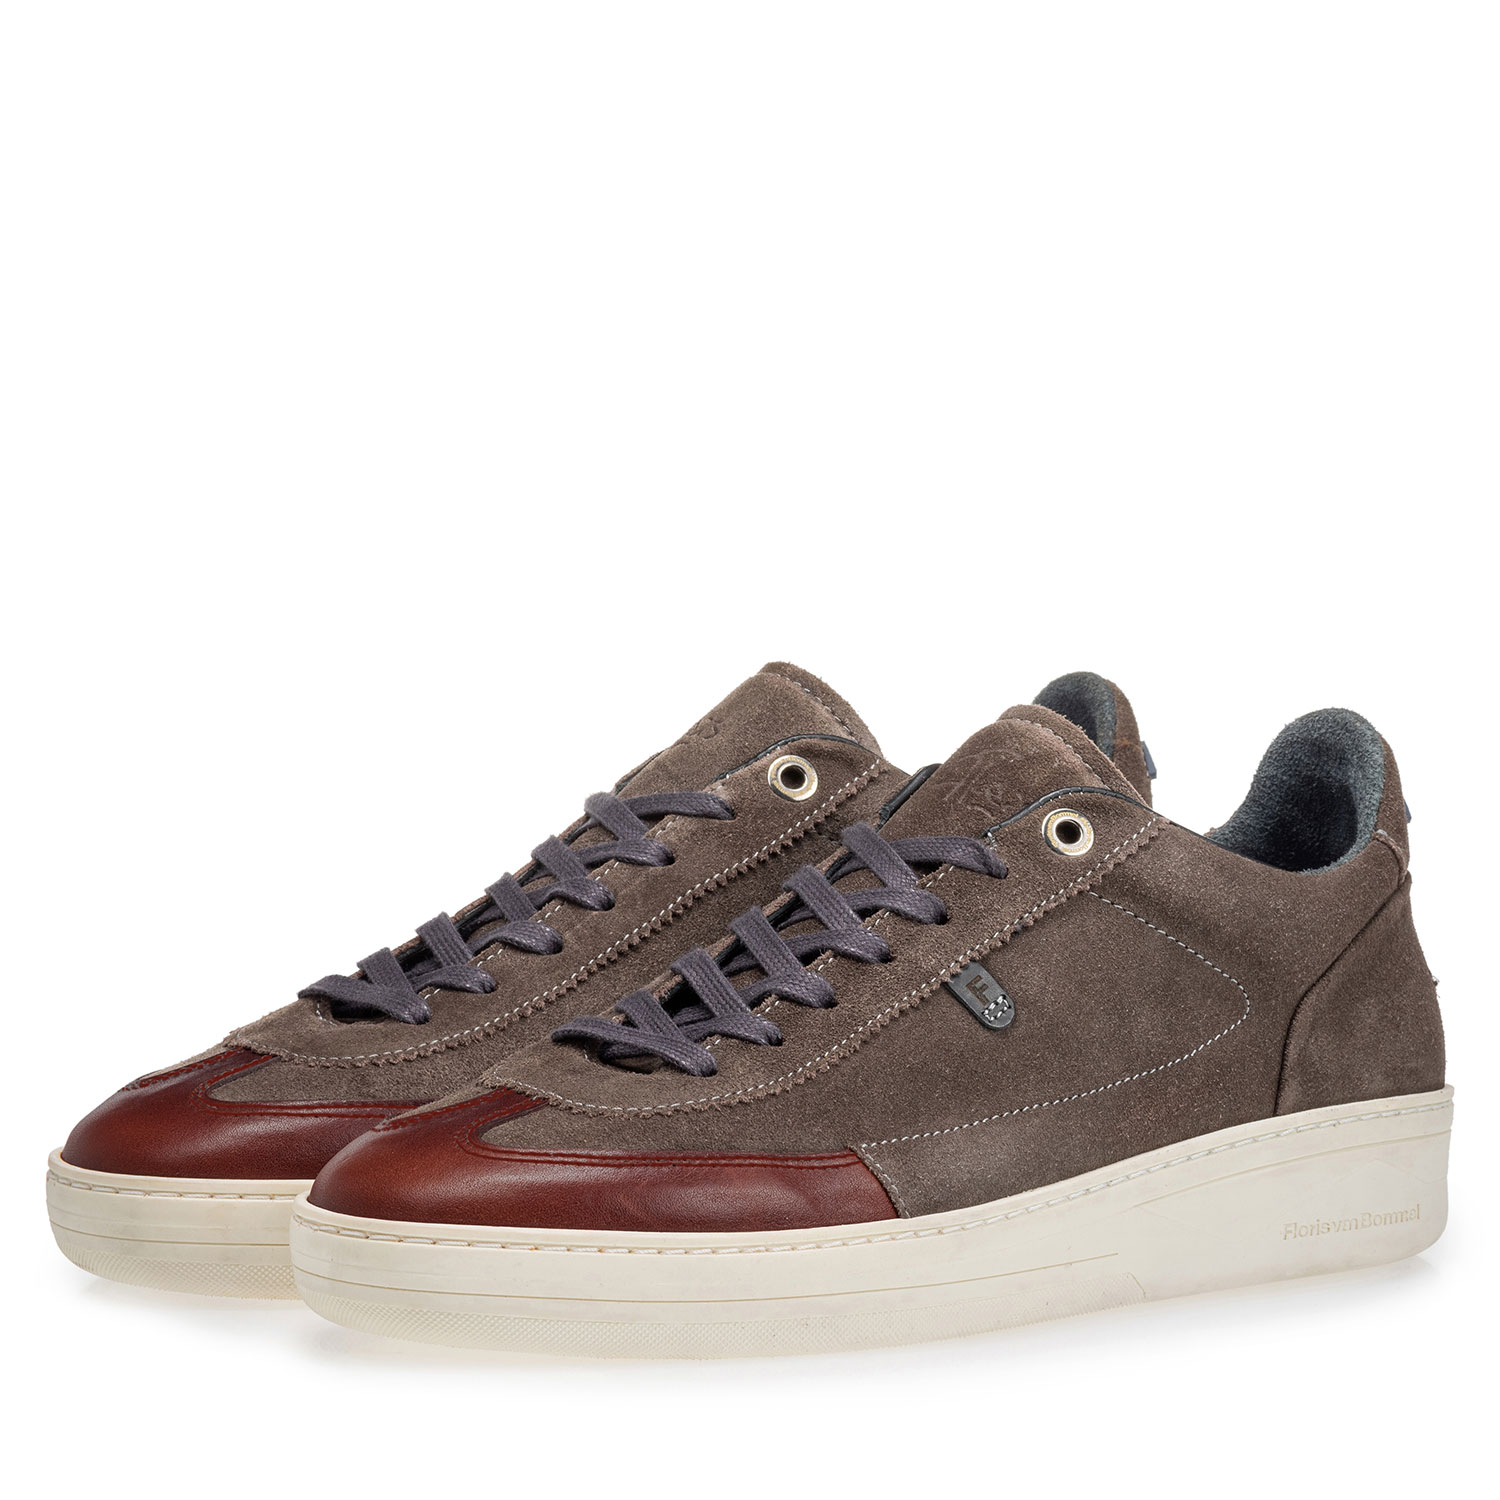 16267/07 - Sneaker suede leather dark taupe